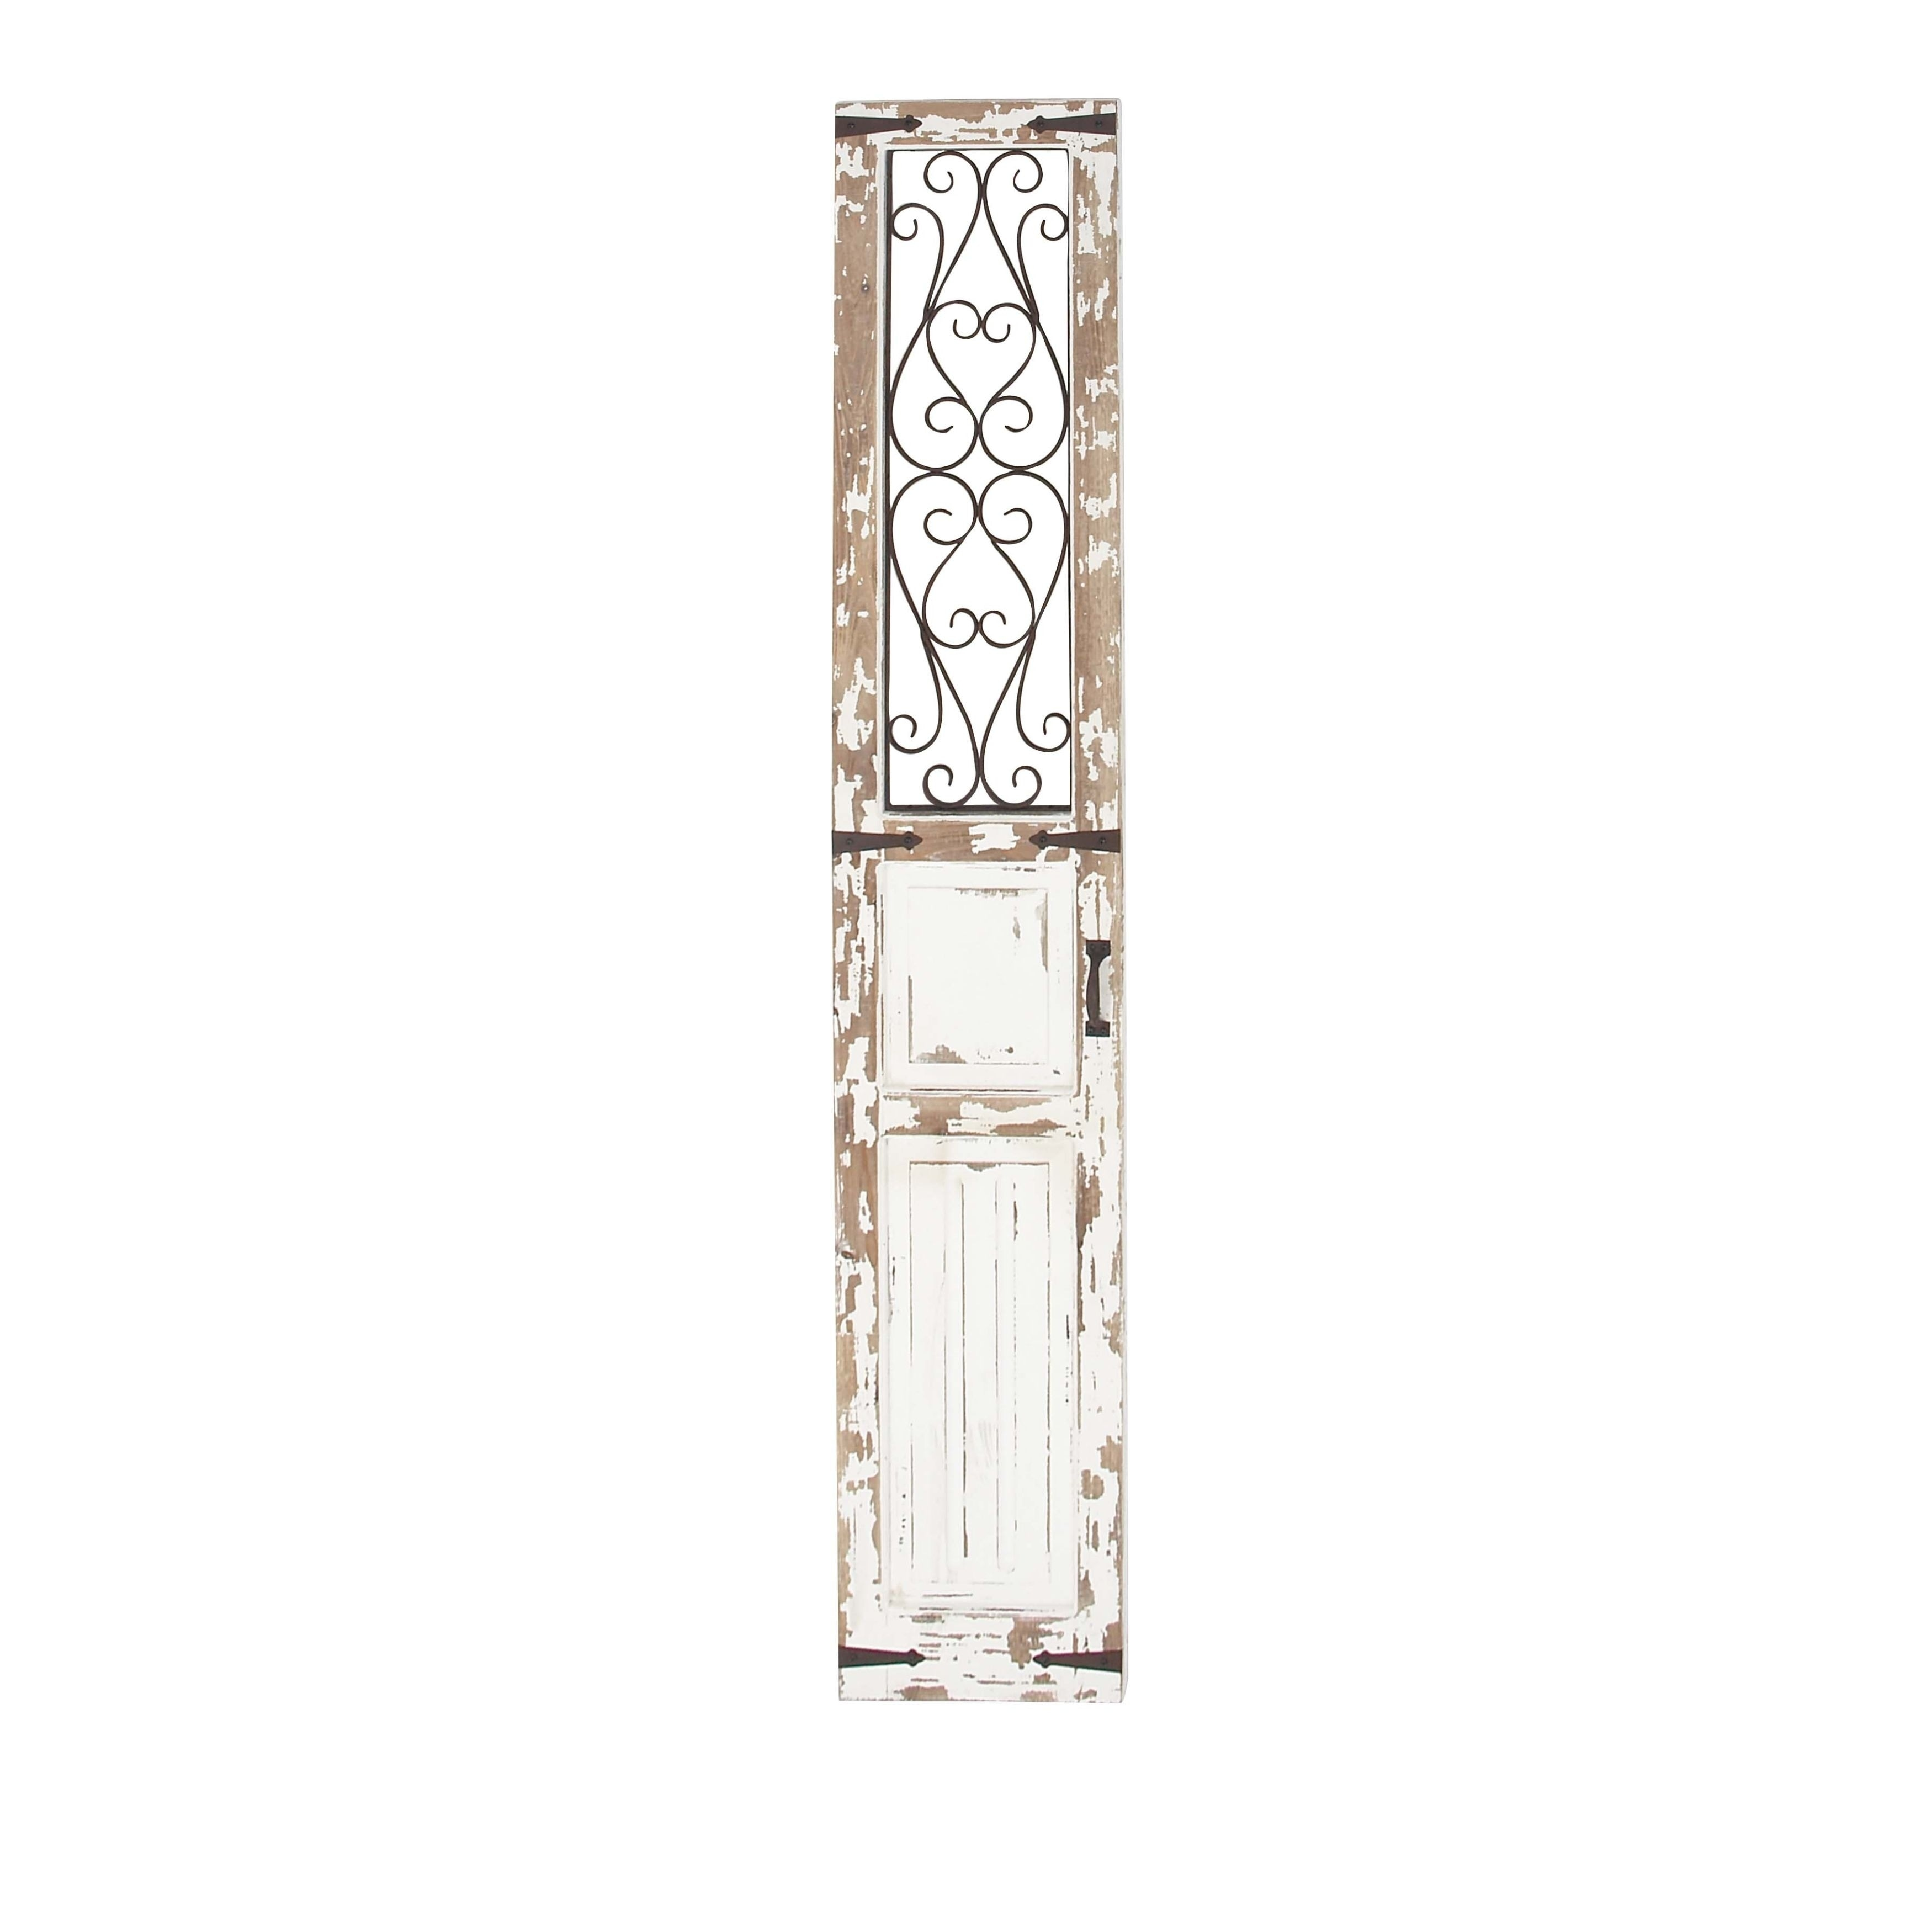 Traditional Distressed Wood With Iron Scrollwork Door Panel Wall Decor On Free Shipping Today 19563318